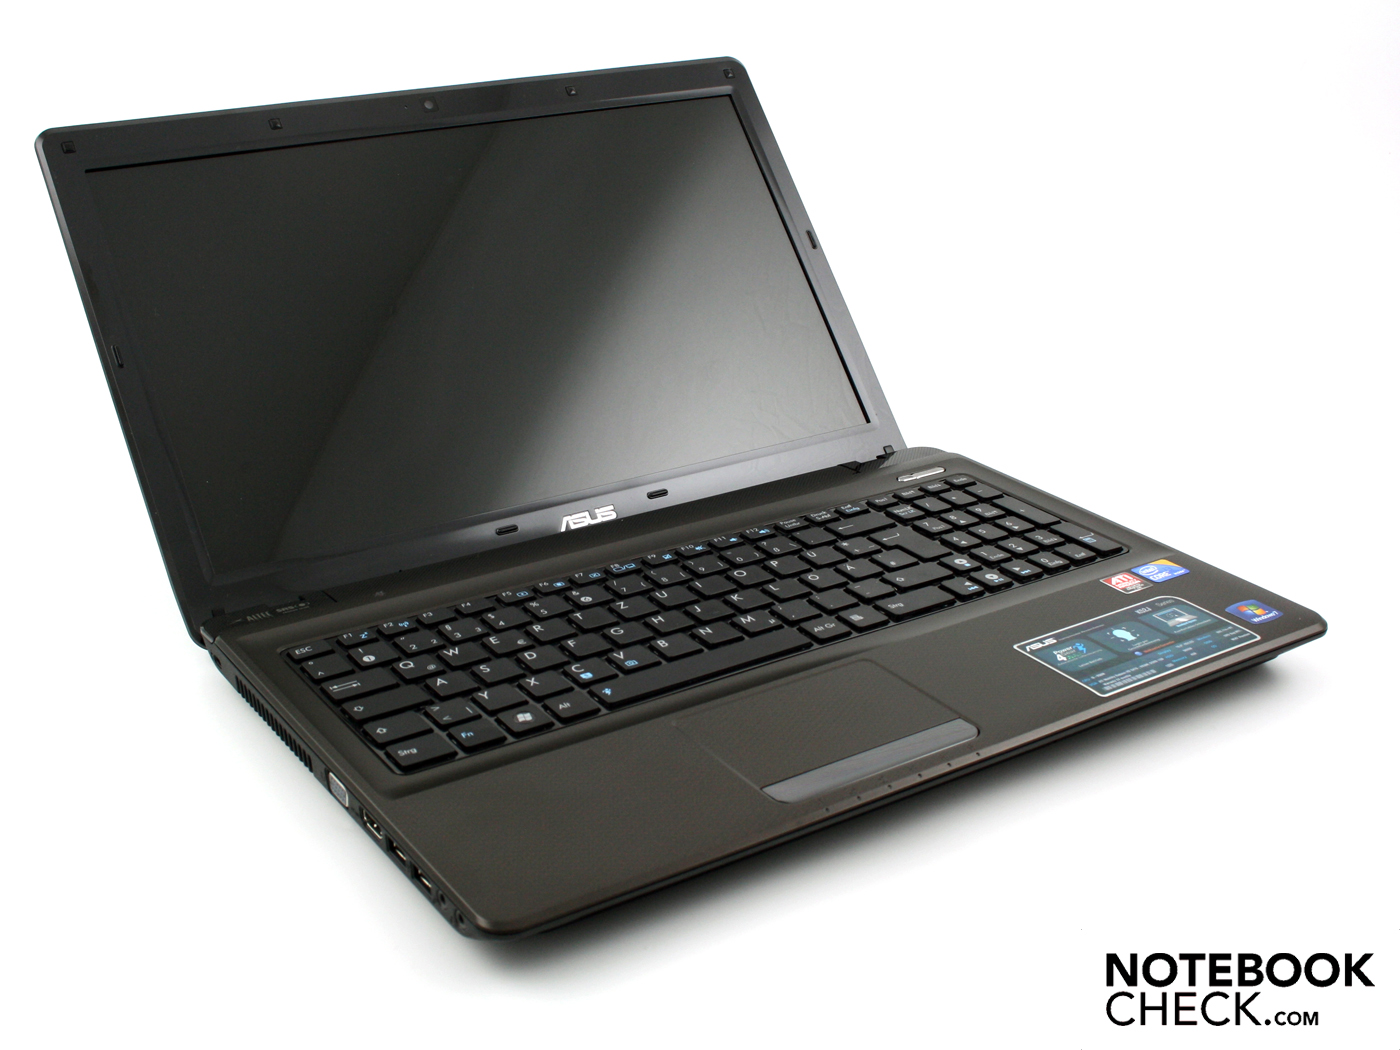 Asus K52Jr Notebook ATK ACPI Drivers